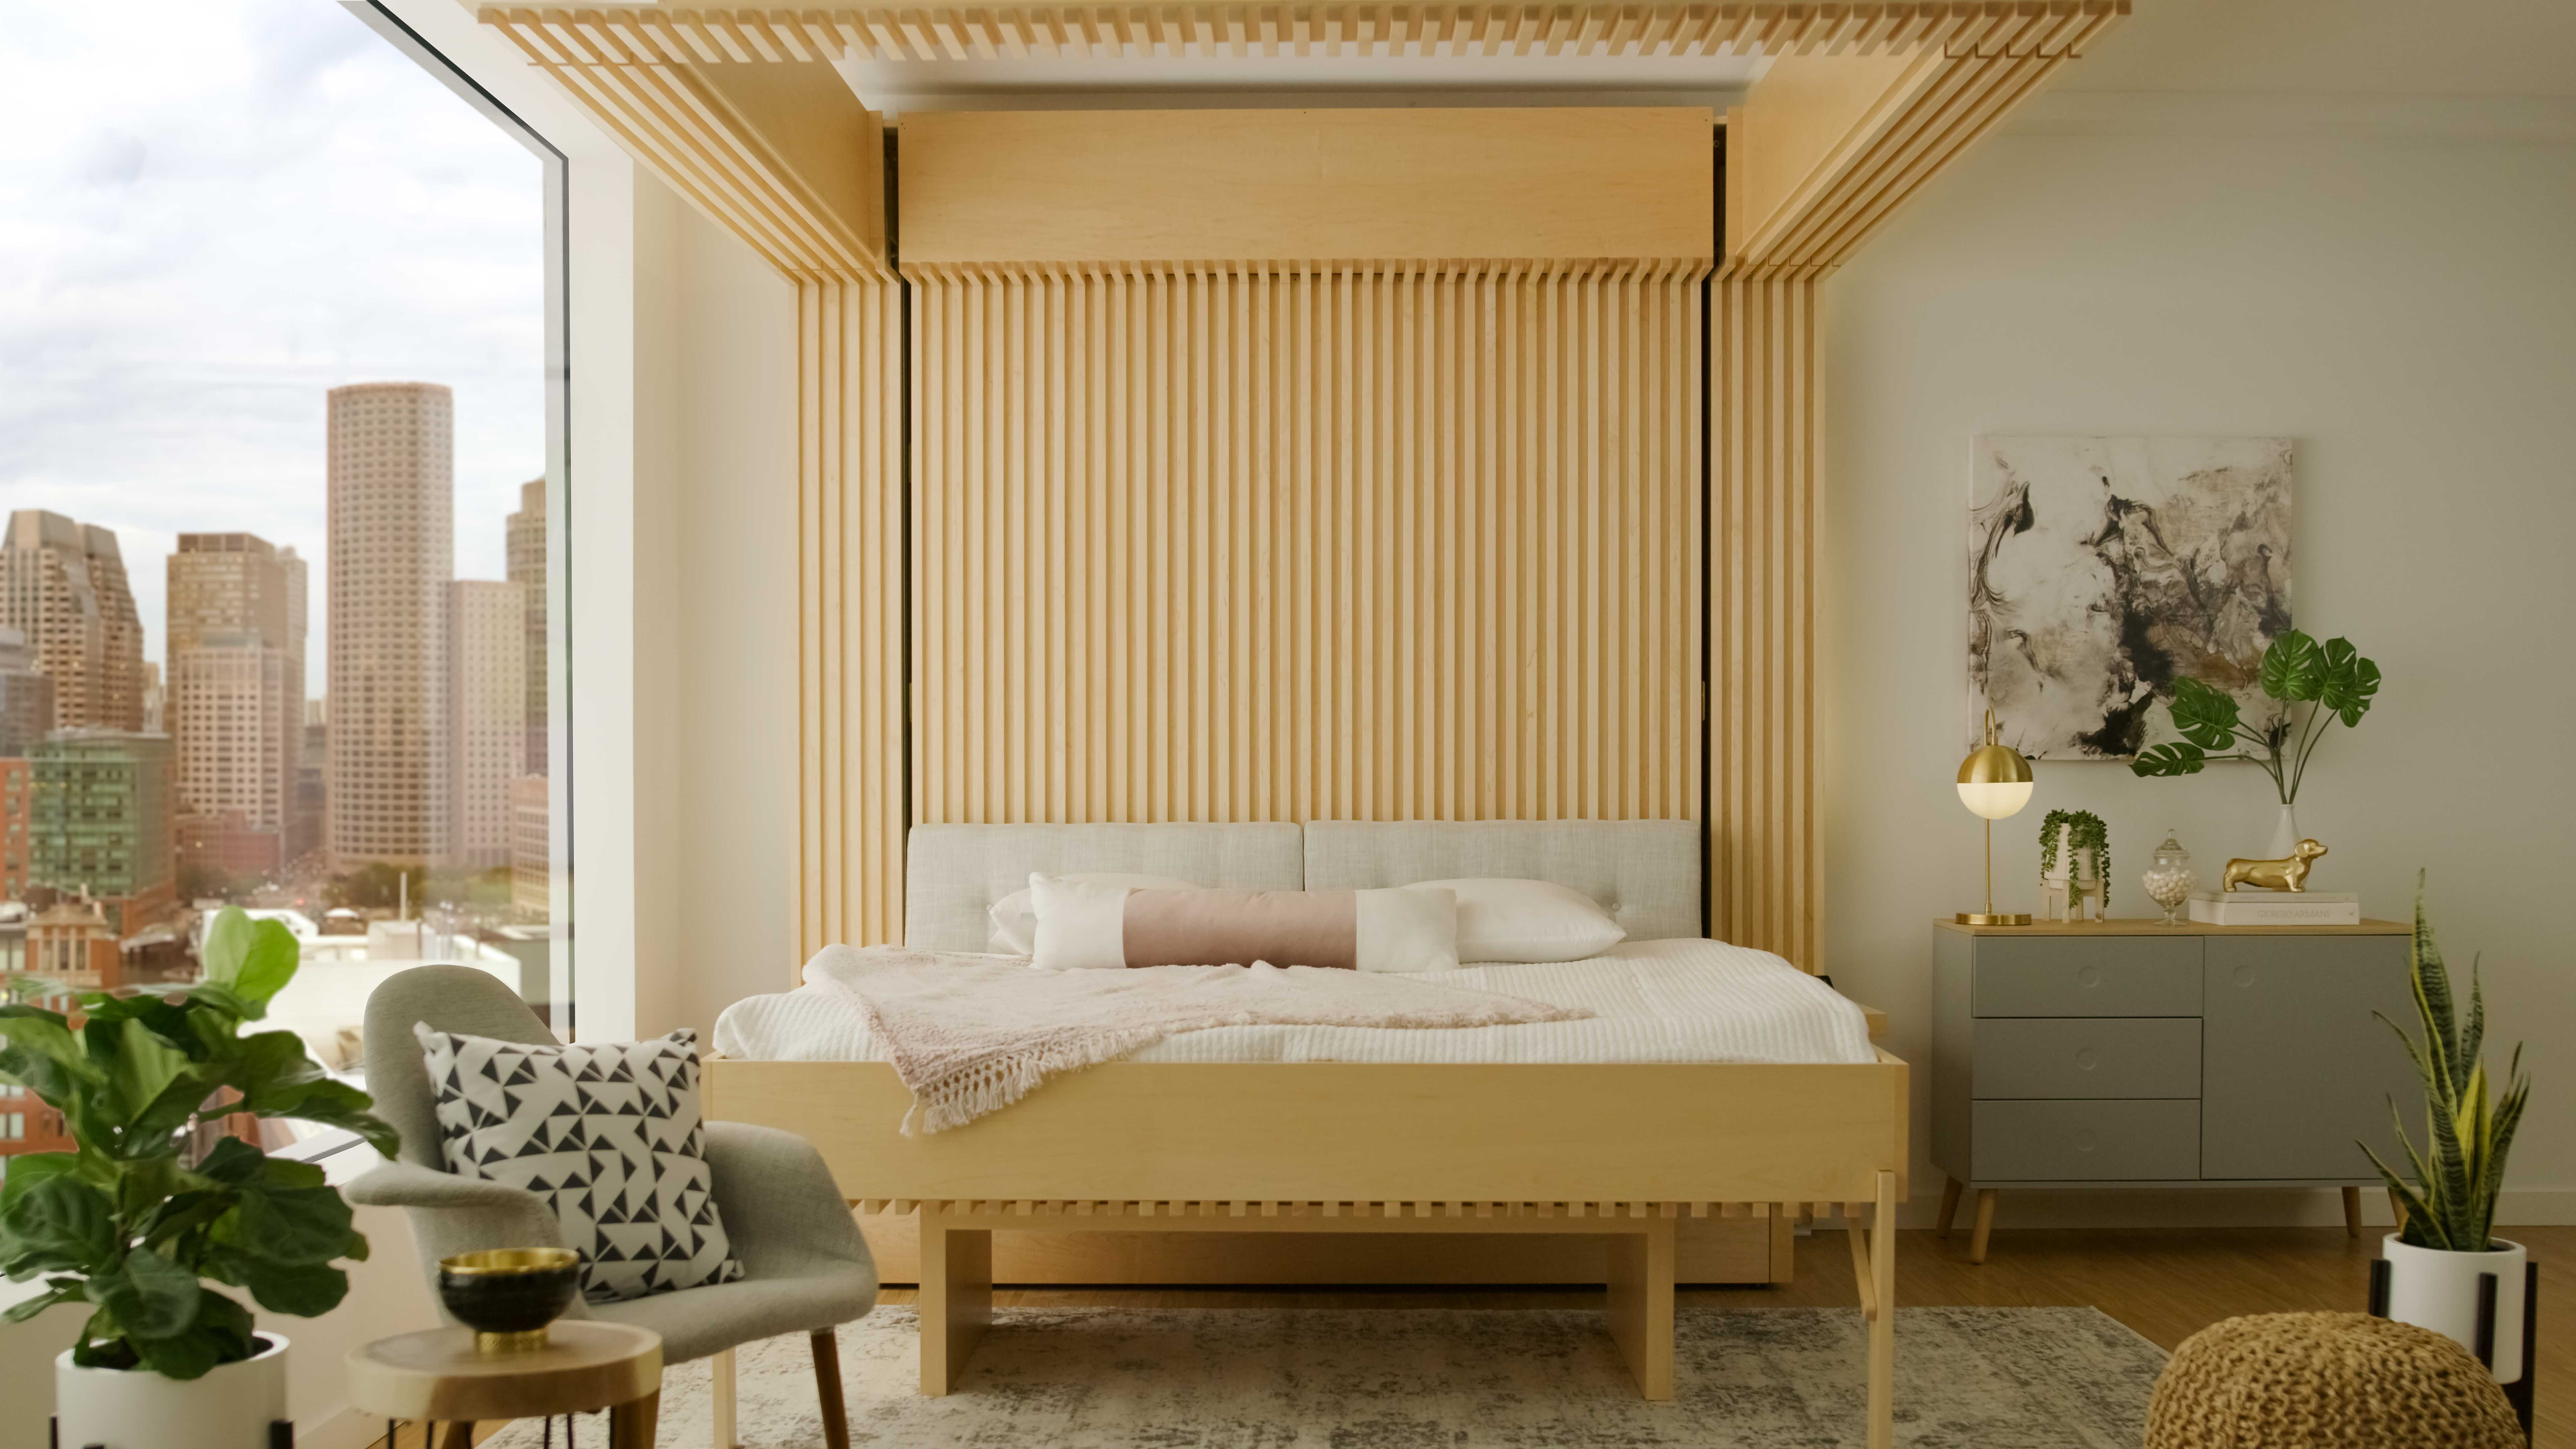 Ori\u0027s new robotic furniture includes a bed that drops from the ceiling & How to brighten a dark room: 9 ideas to try - Curbed